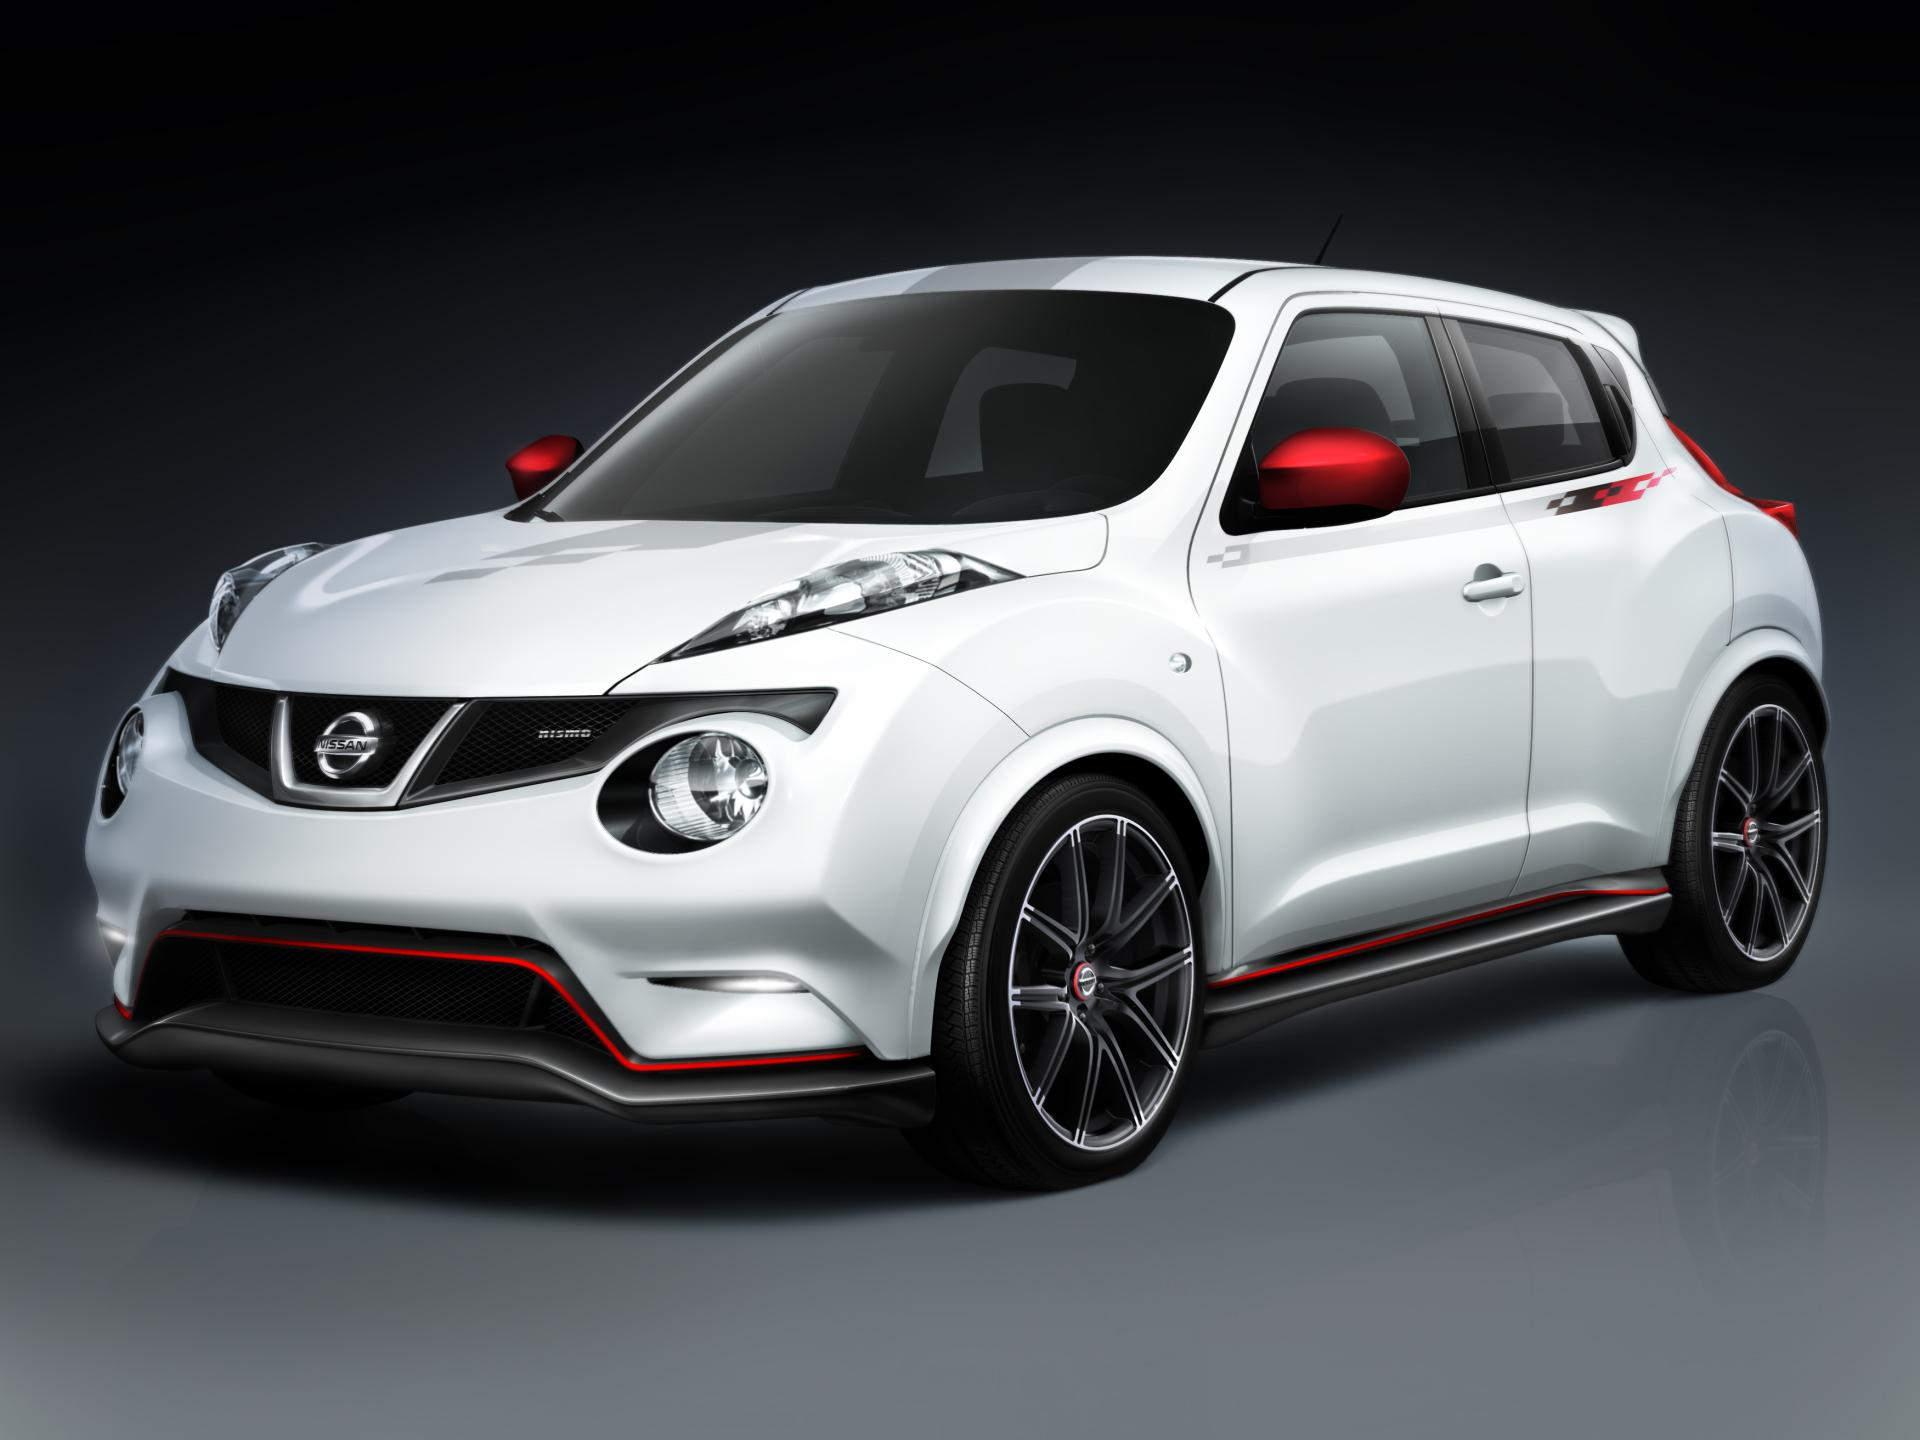 2012 nissan juke nismo concept news and information for Nissan juke einparkhilfe